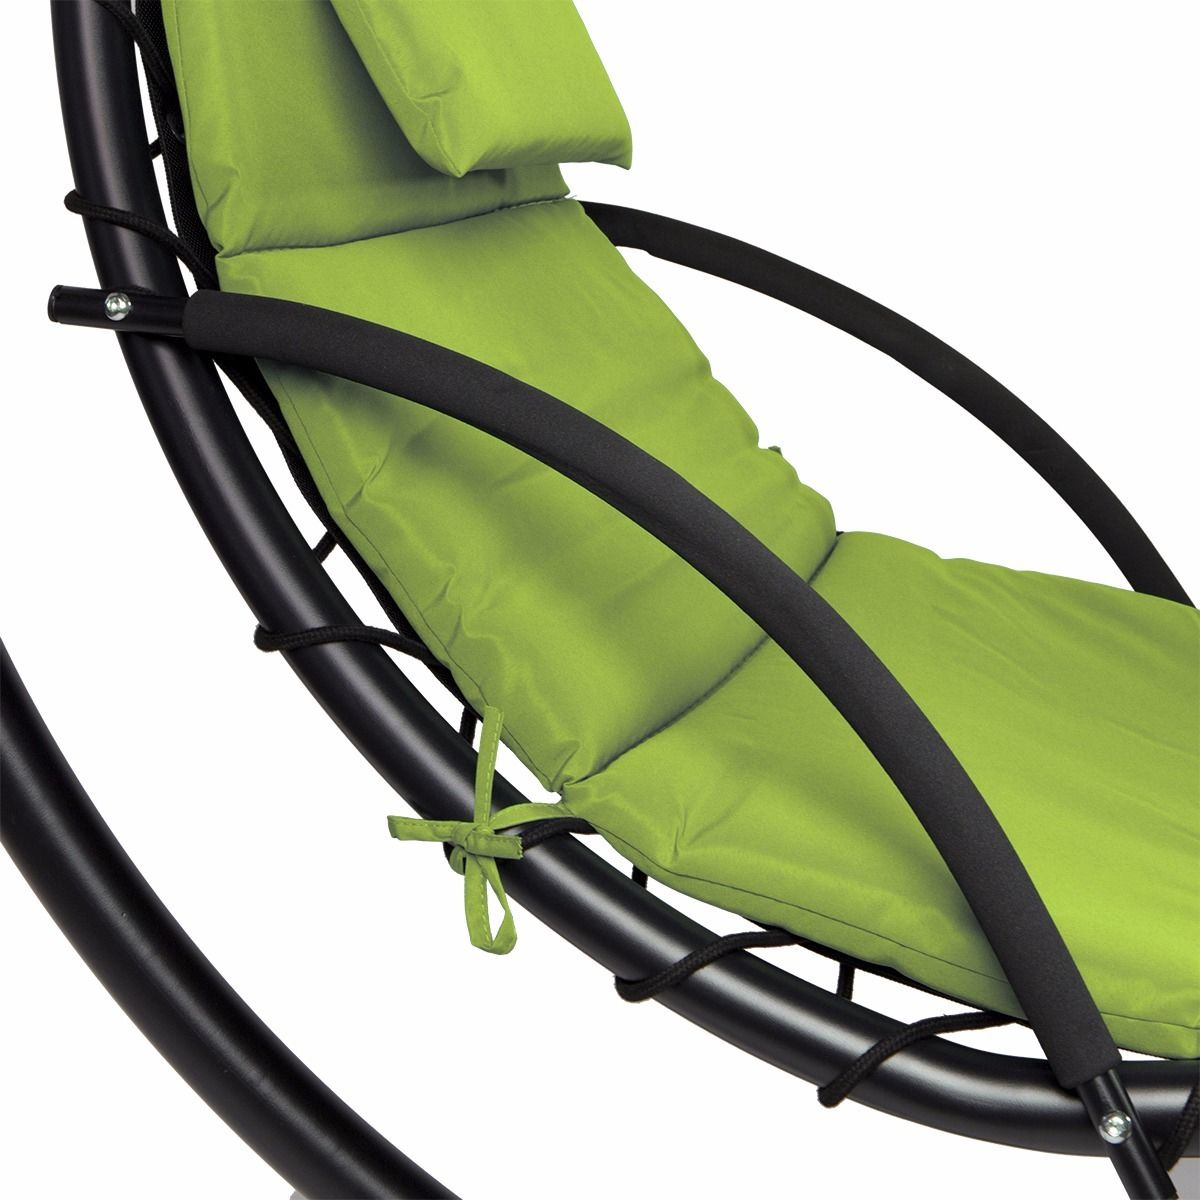 Barton Patio Hanging Helicopter dream Lounger Chair Stand ... on Hanging Helicopter Dream Lounger Chair id=45372